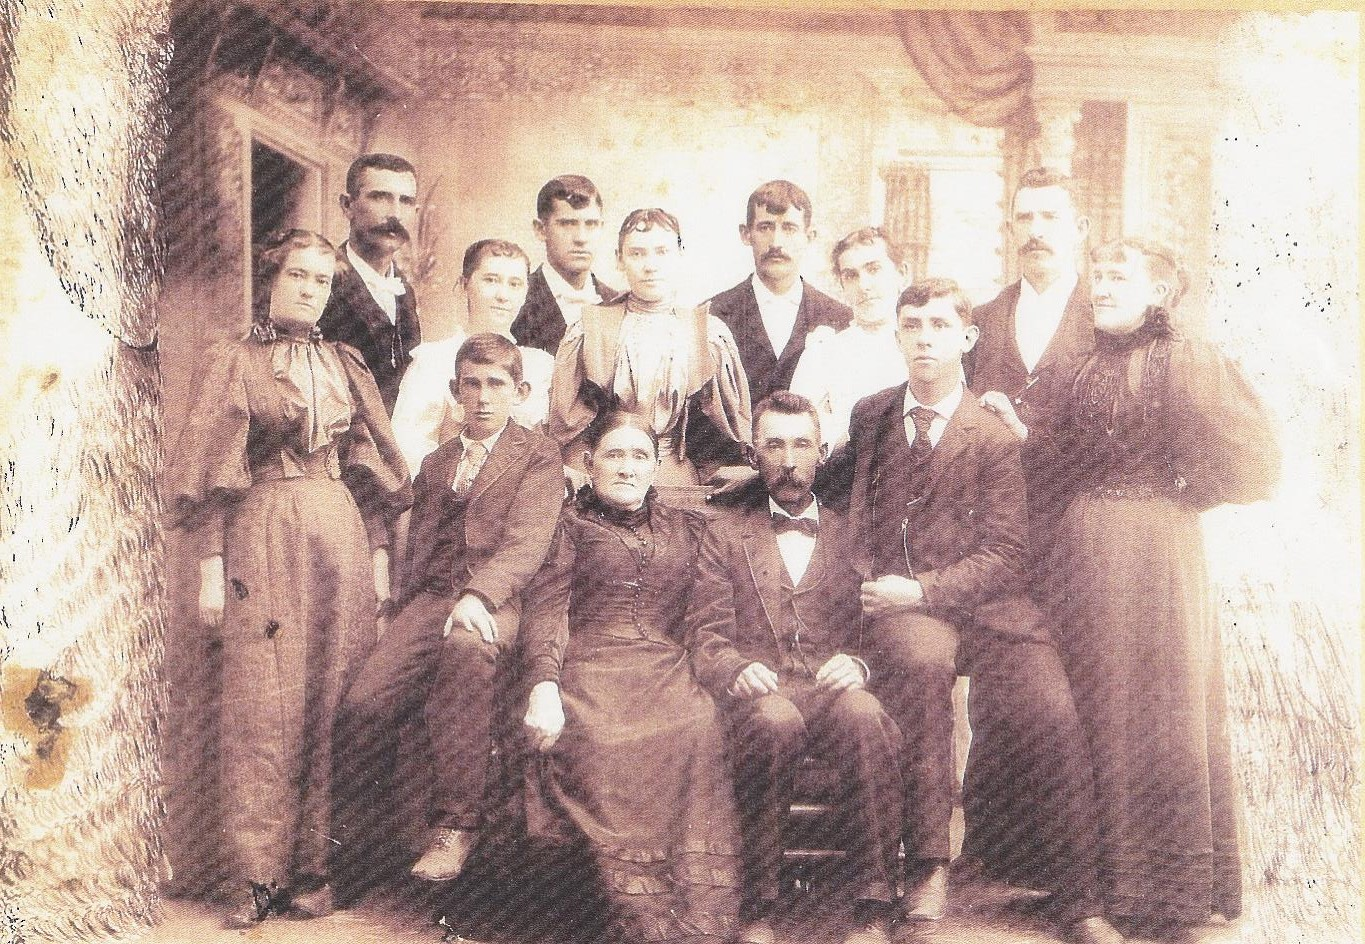 A fun-looking bunch of Kellys, with our great-great Grandfather John, with his wife Catherine on the far left.